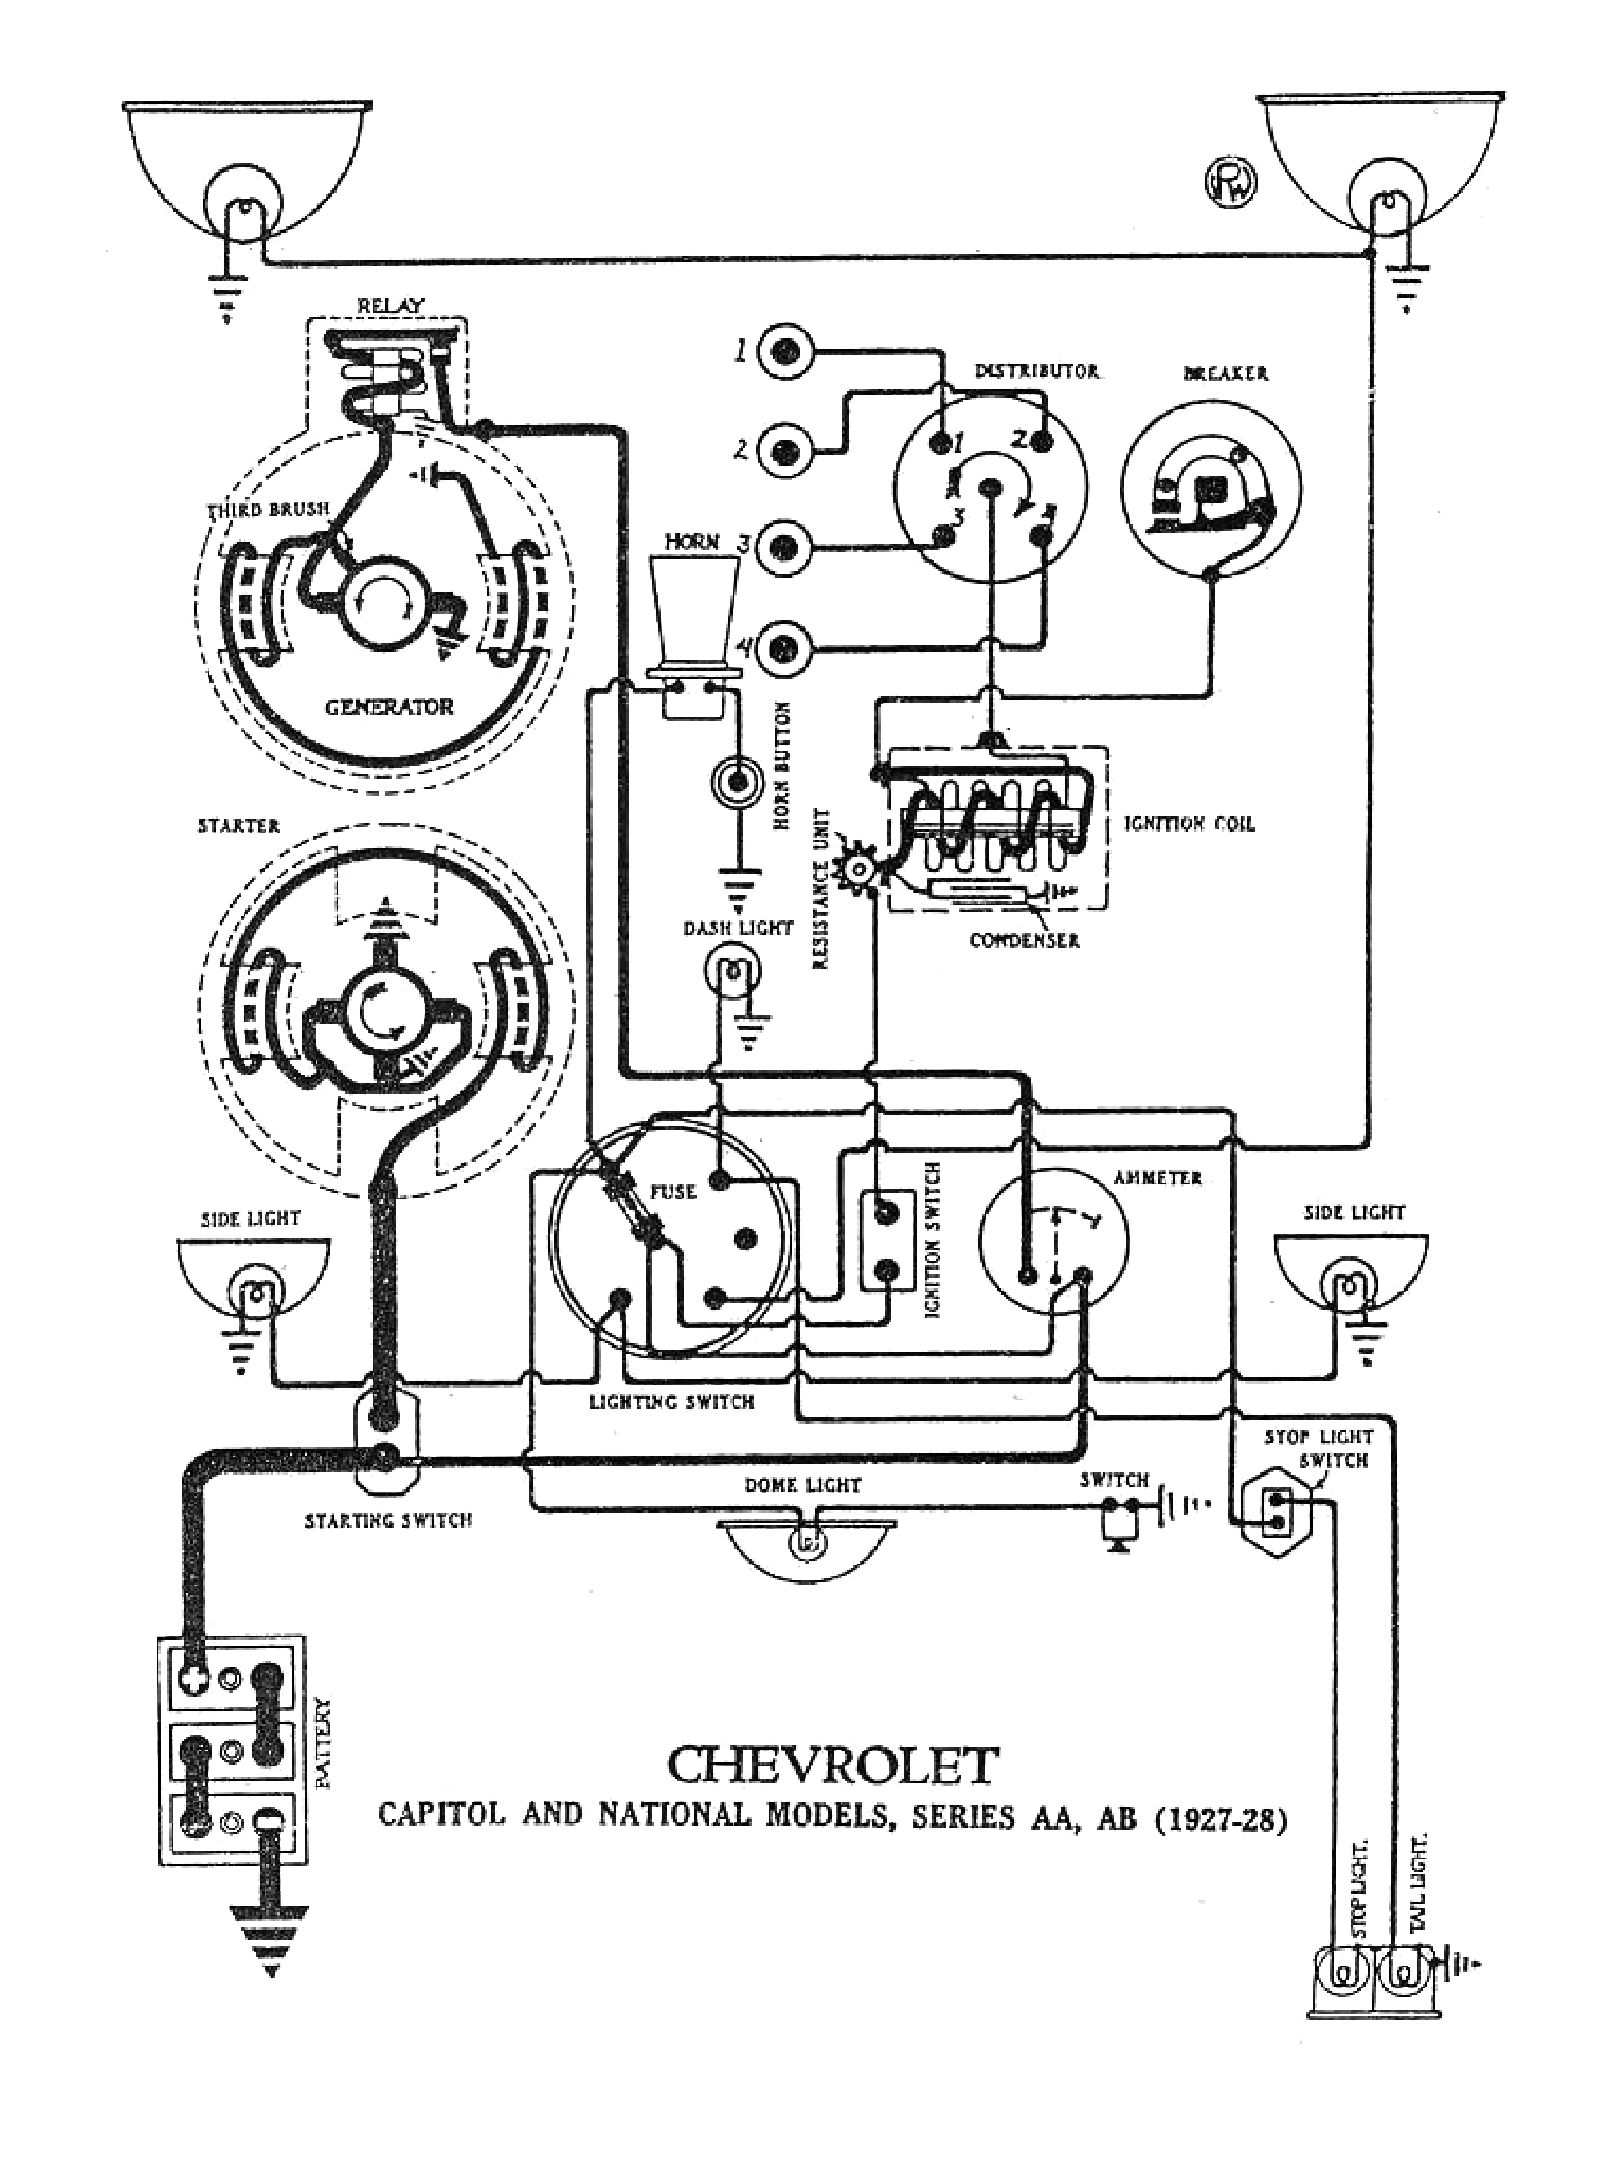 C85dbe5 For Ford Tractor Wiring Harness Diagram